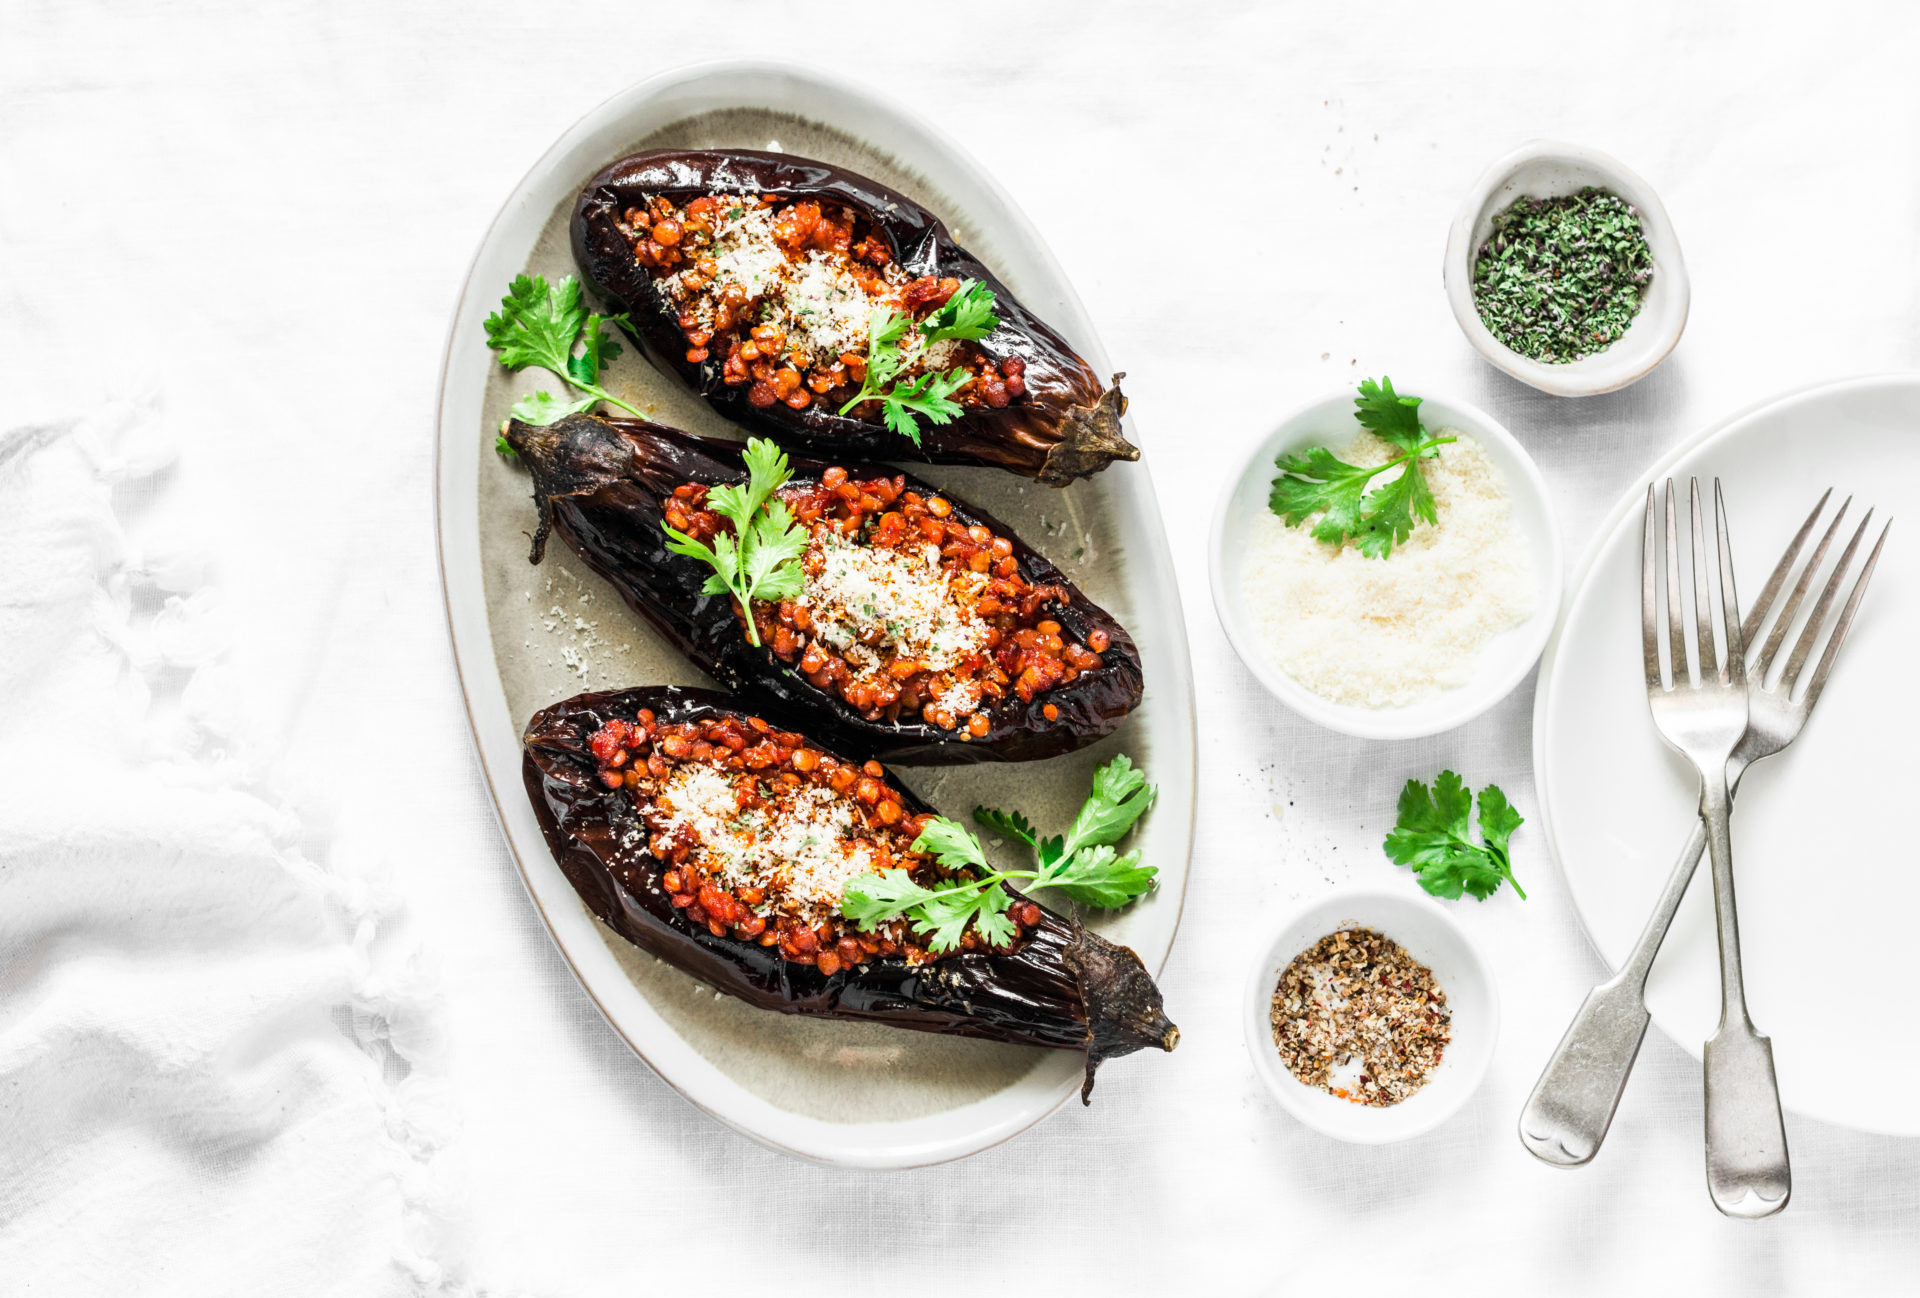 Stuffed lentils roasted eggplant - delicious healthy vegetarian served lunch  table. On a light background, top view